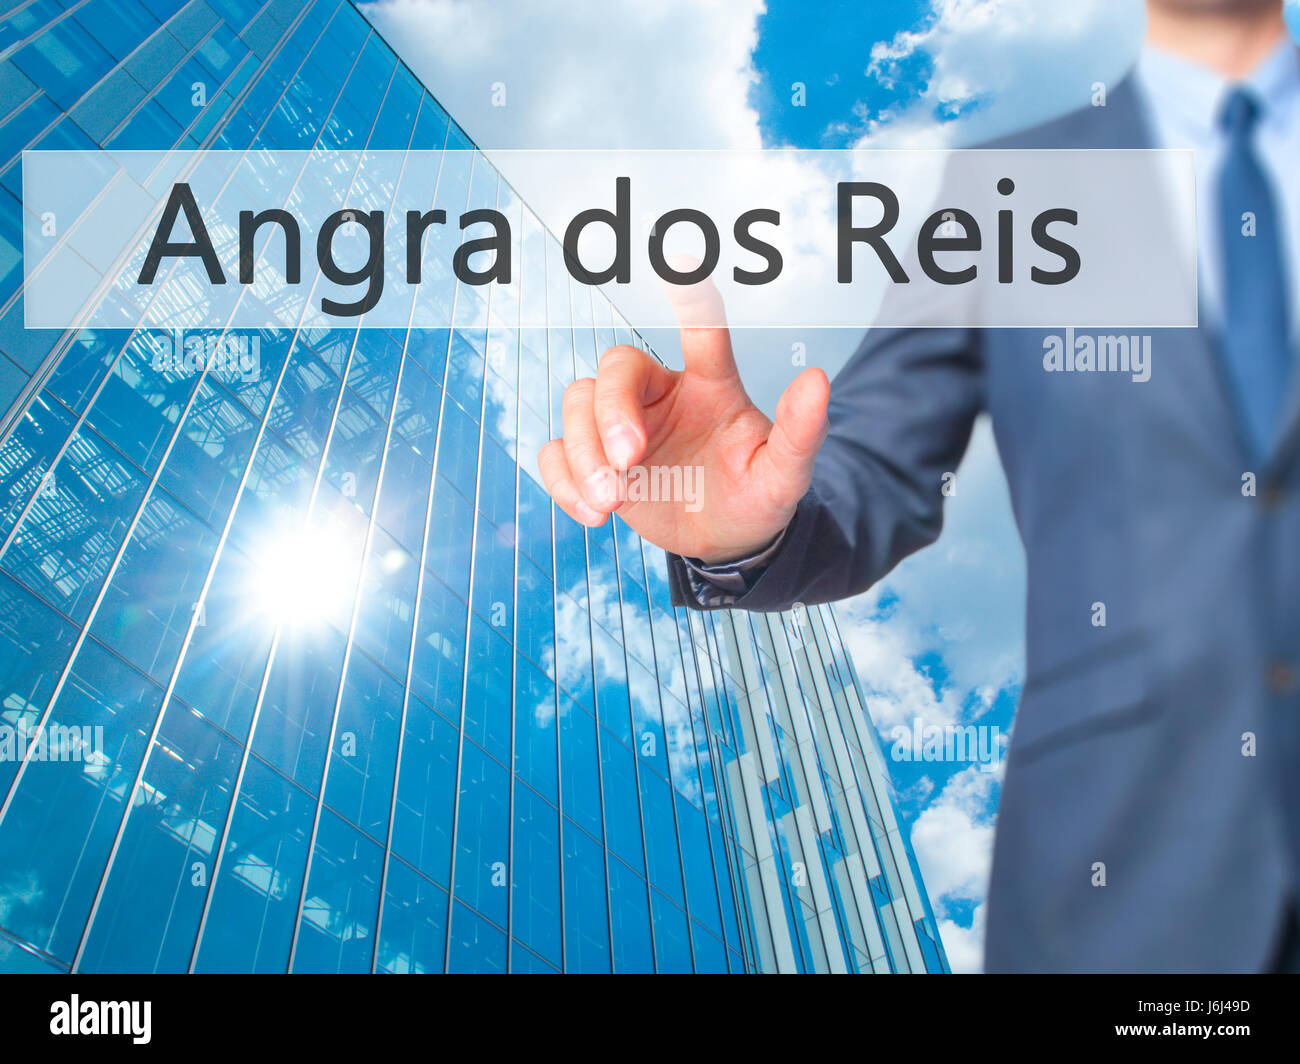 Angra dos Reis - Imprenditore premere sul display digitale. Business, internet concetto. Stock Photo Immagini Stock